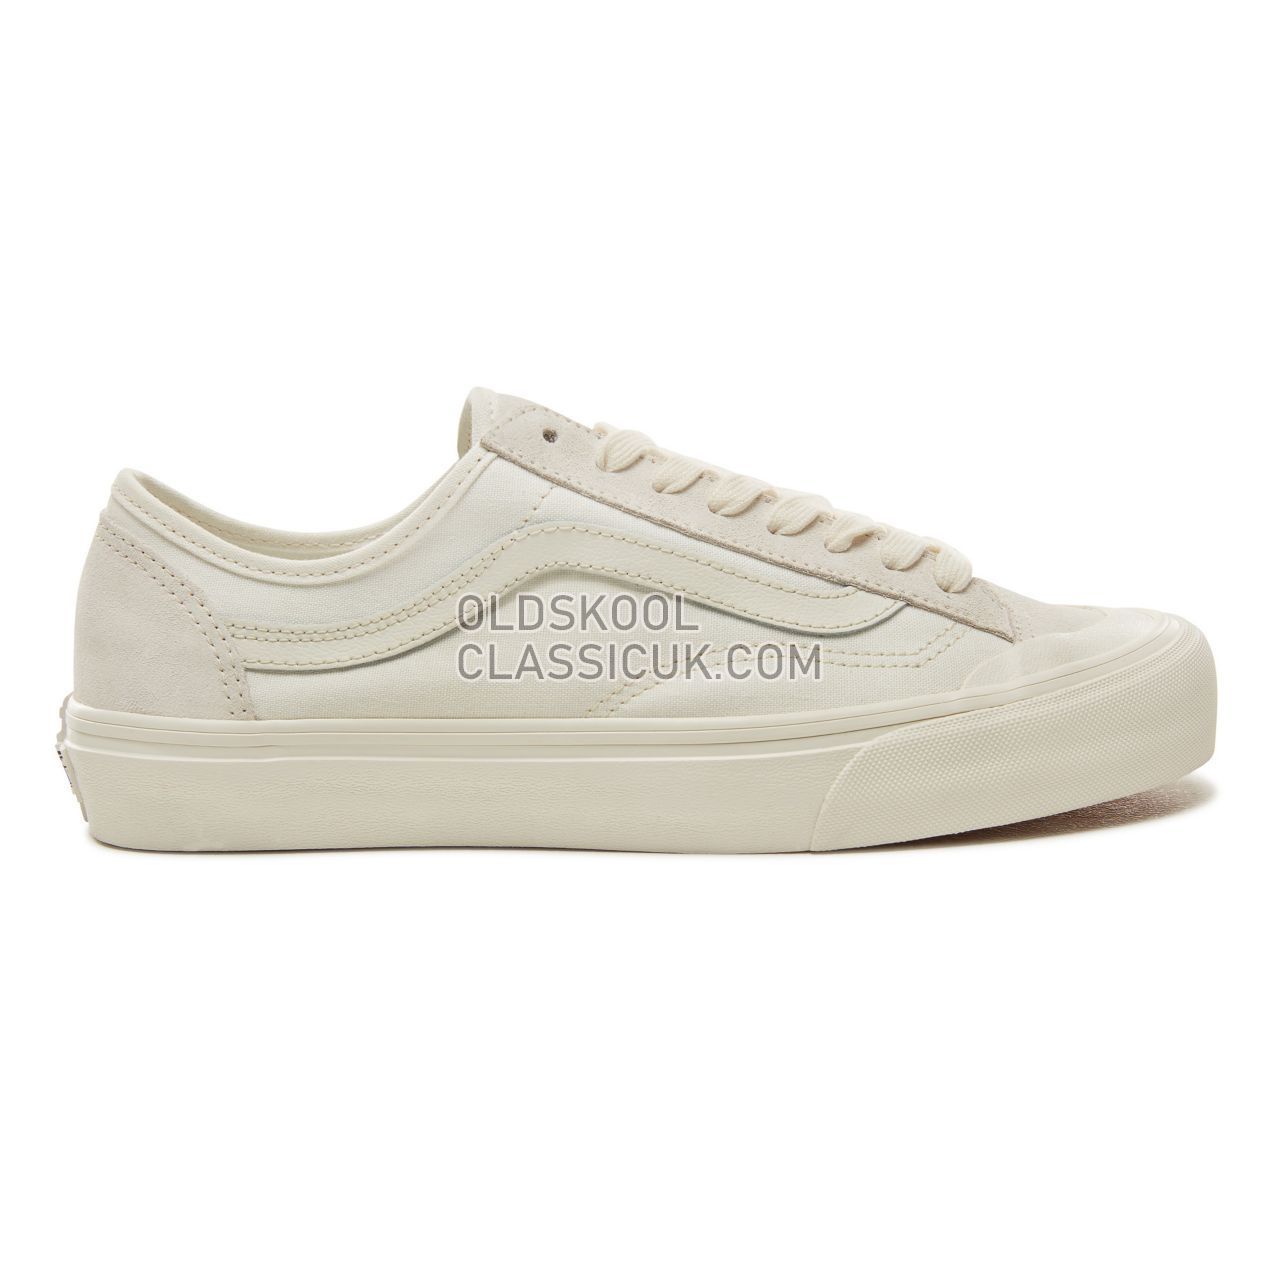 Vans Style 36 Decon SF Sneakers Mens Marshmallow/Marshmallow VA3MVLQC5 Shoes